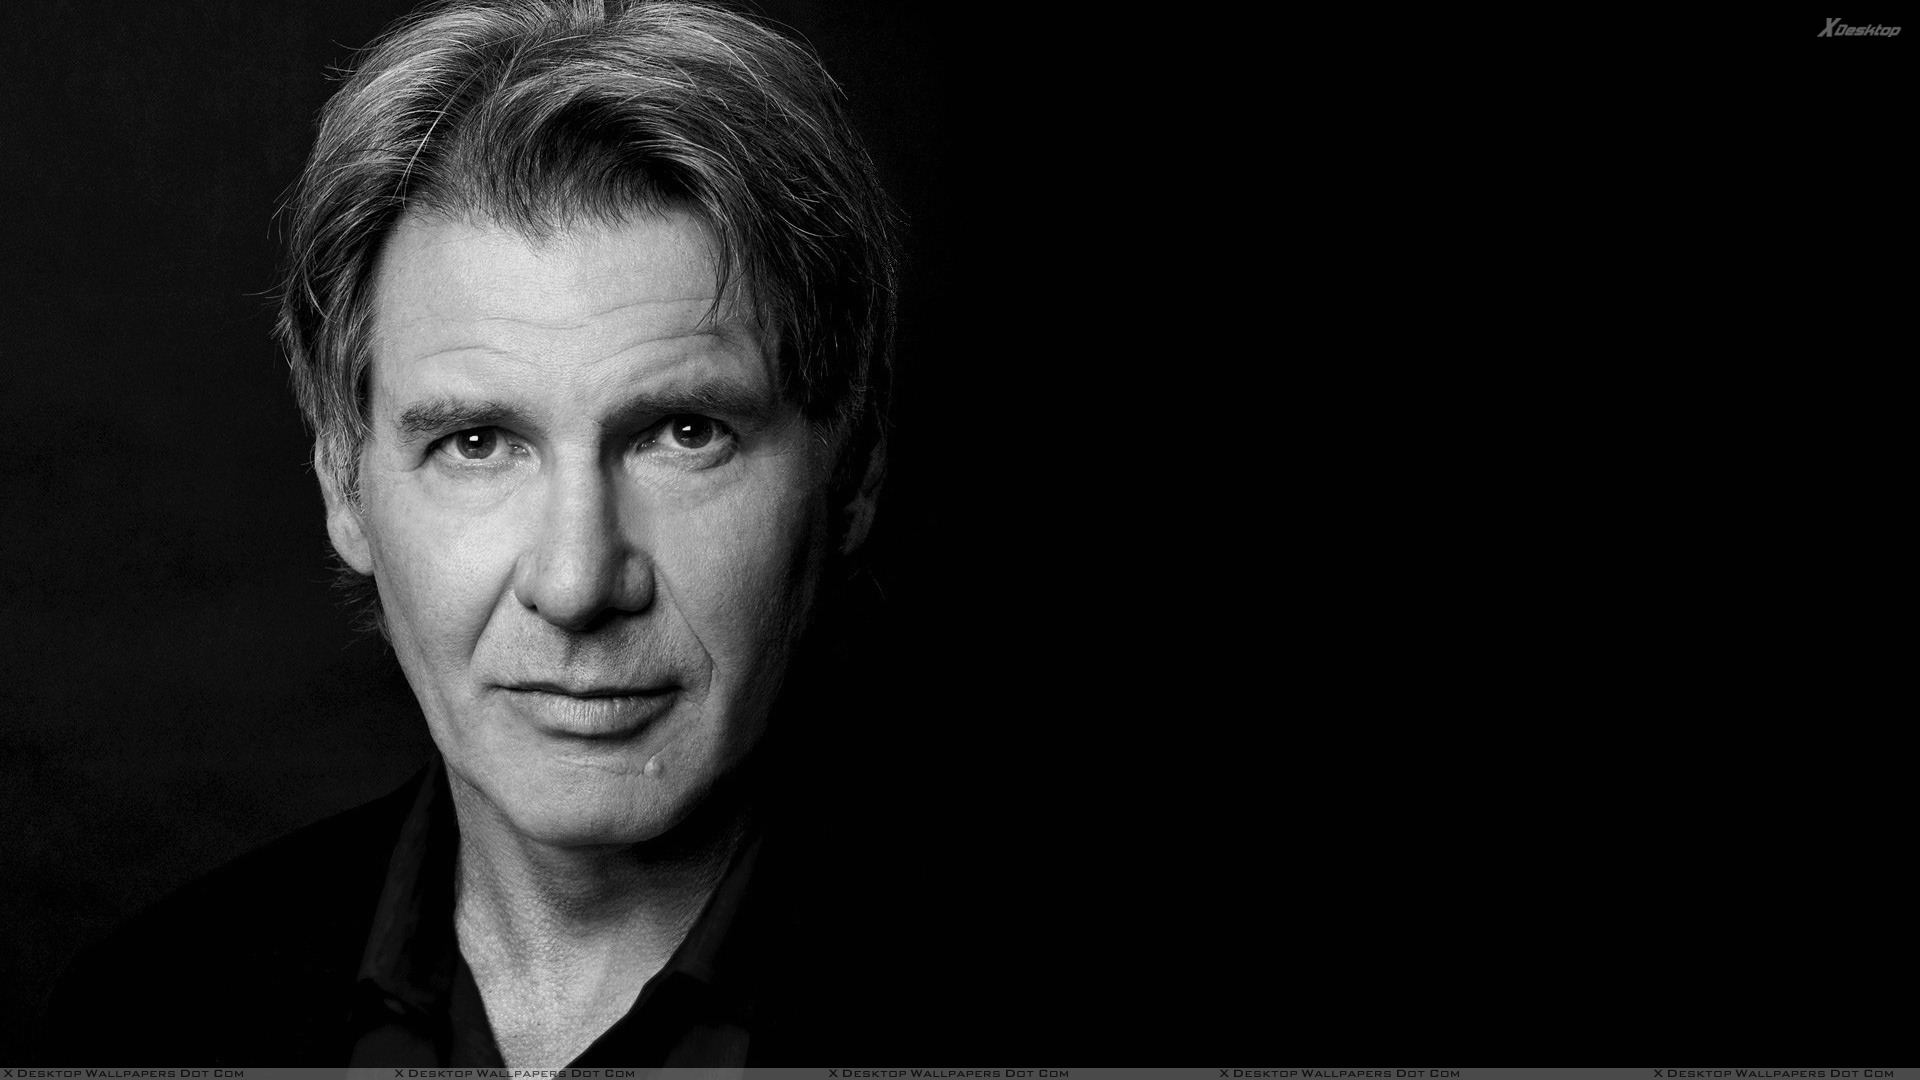 You Are Viewing Wallpaper Led Harrison Ford Looking Front Black N White Face